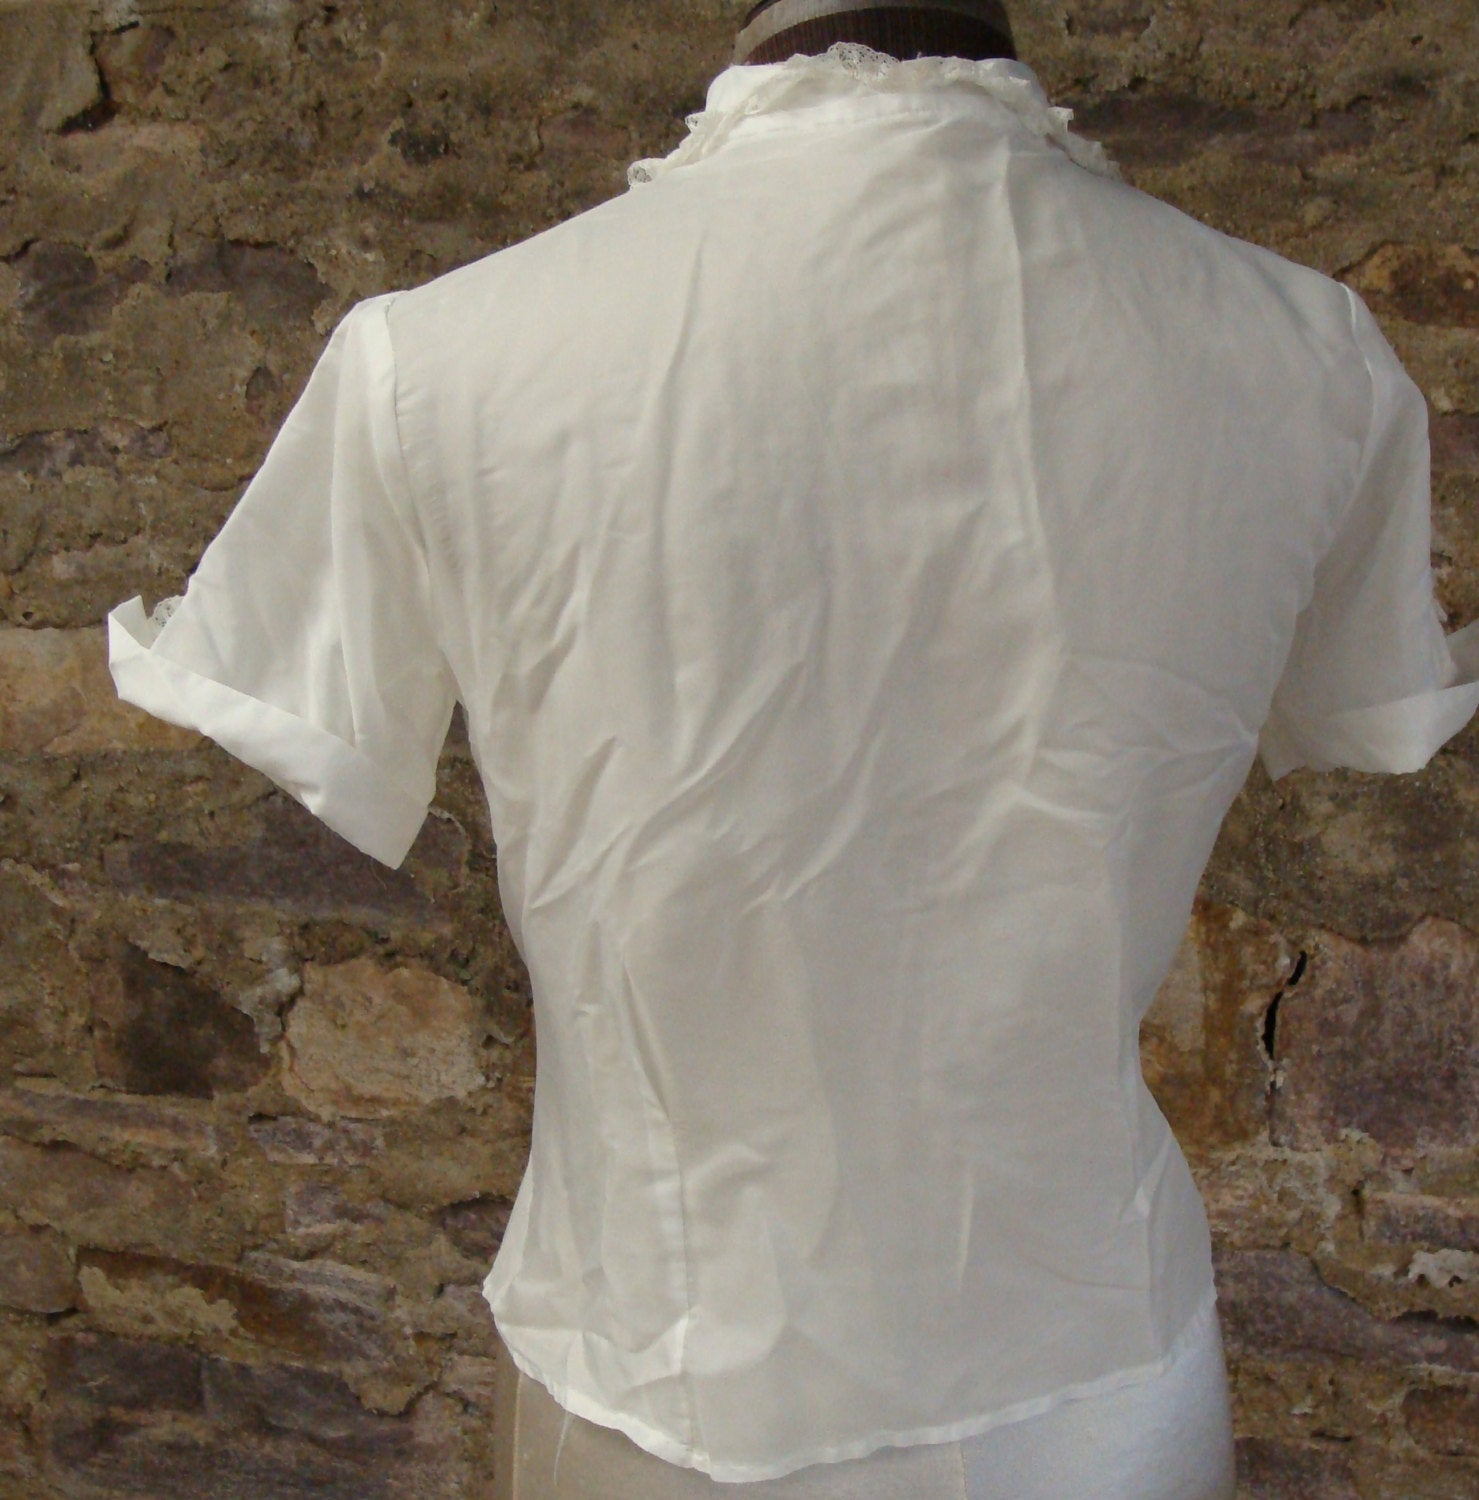 SHEER WHITE BLOUSE vintage peter pan collar lace trim S (G7)